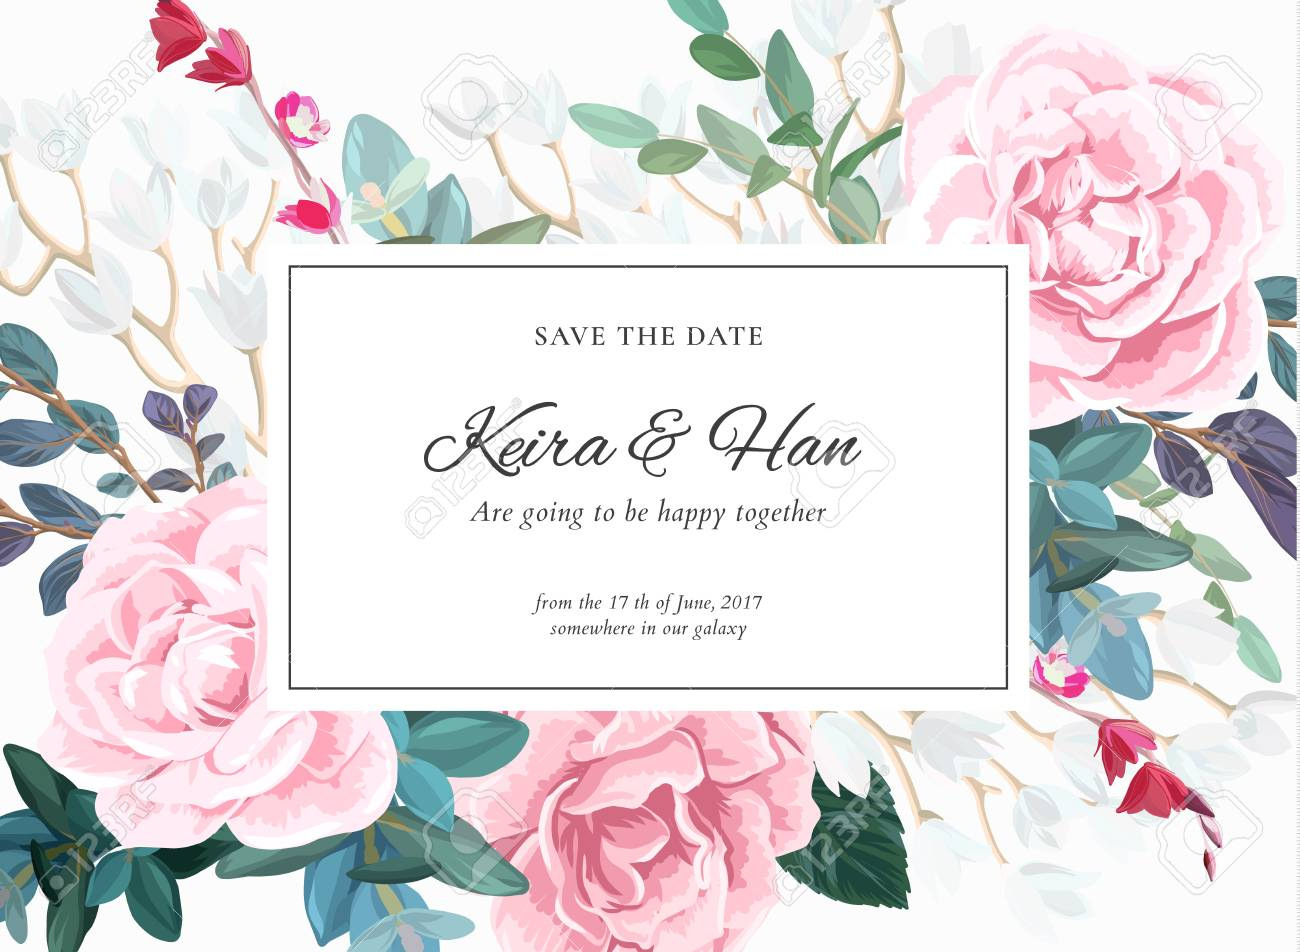 Floral Wedding Invitation Design With Pale Pink Roses On The